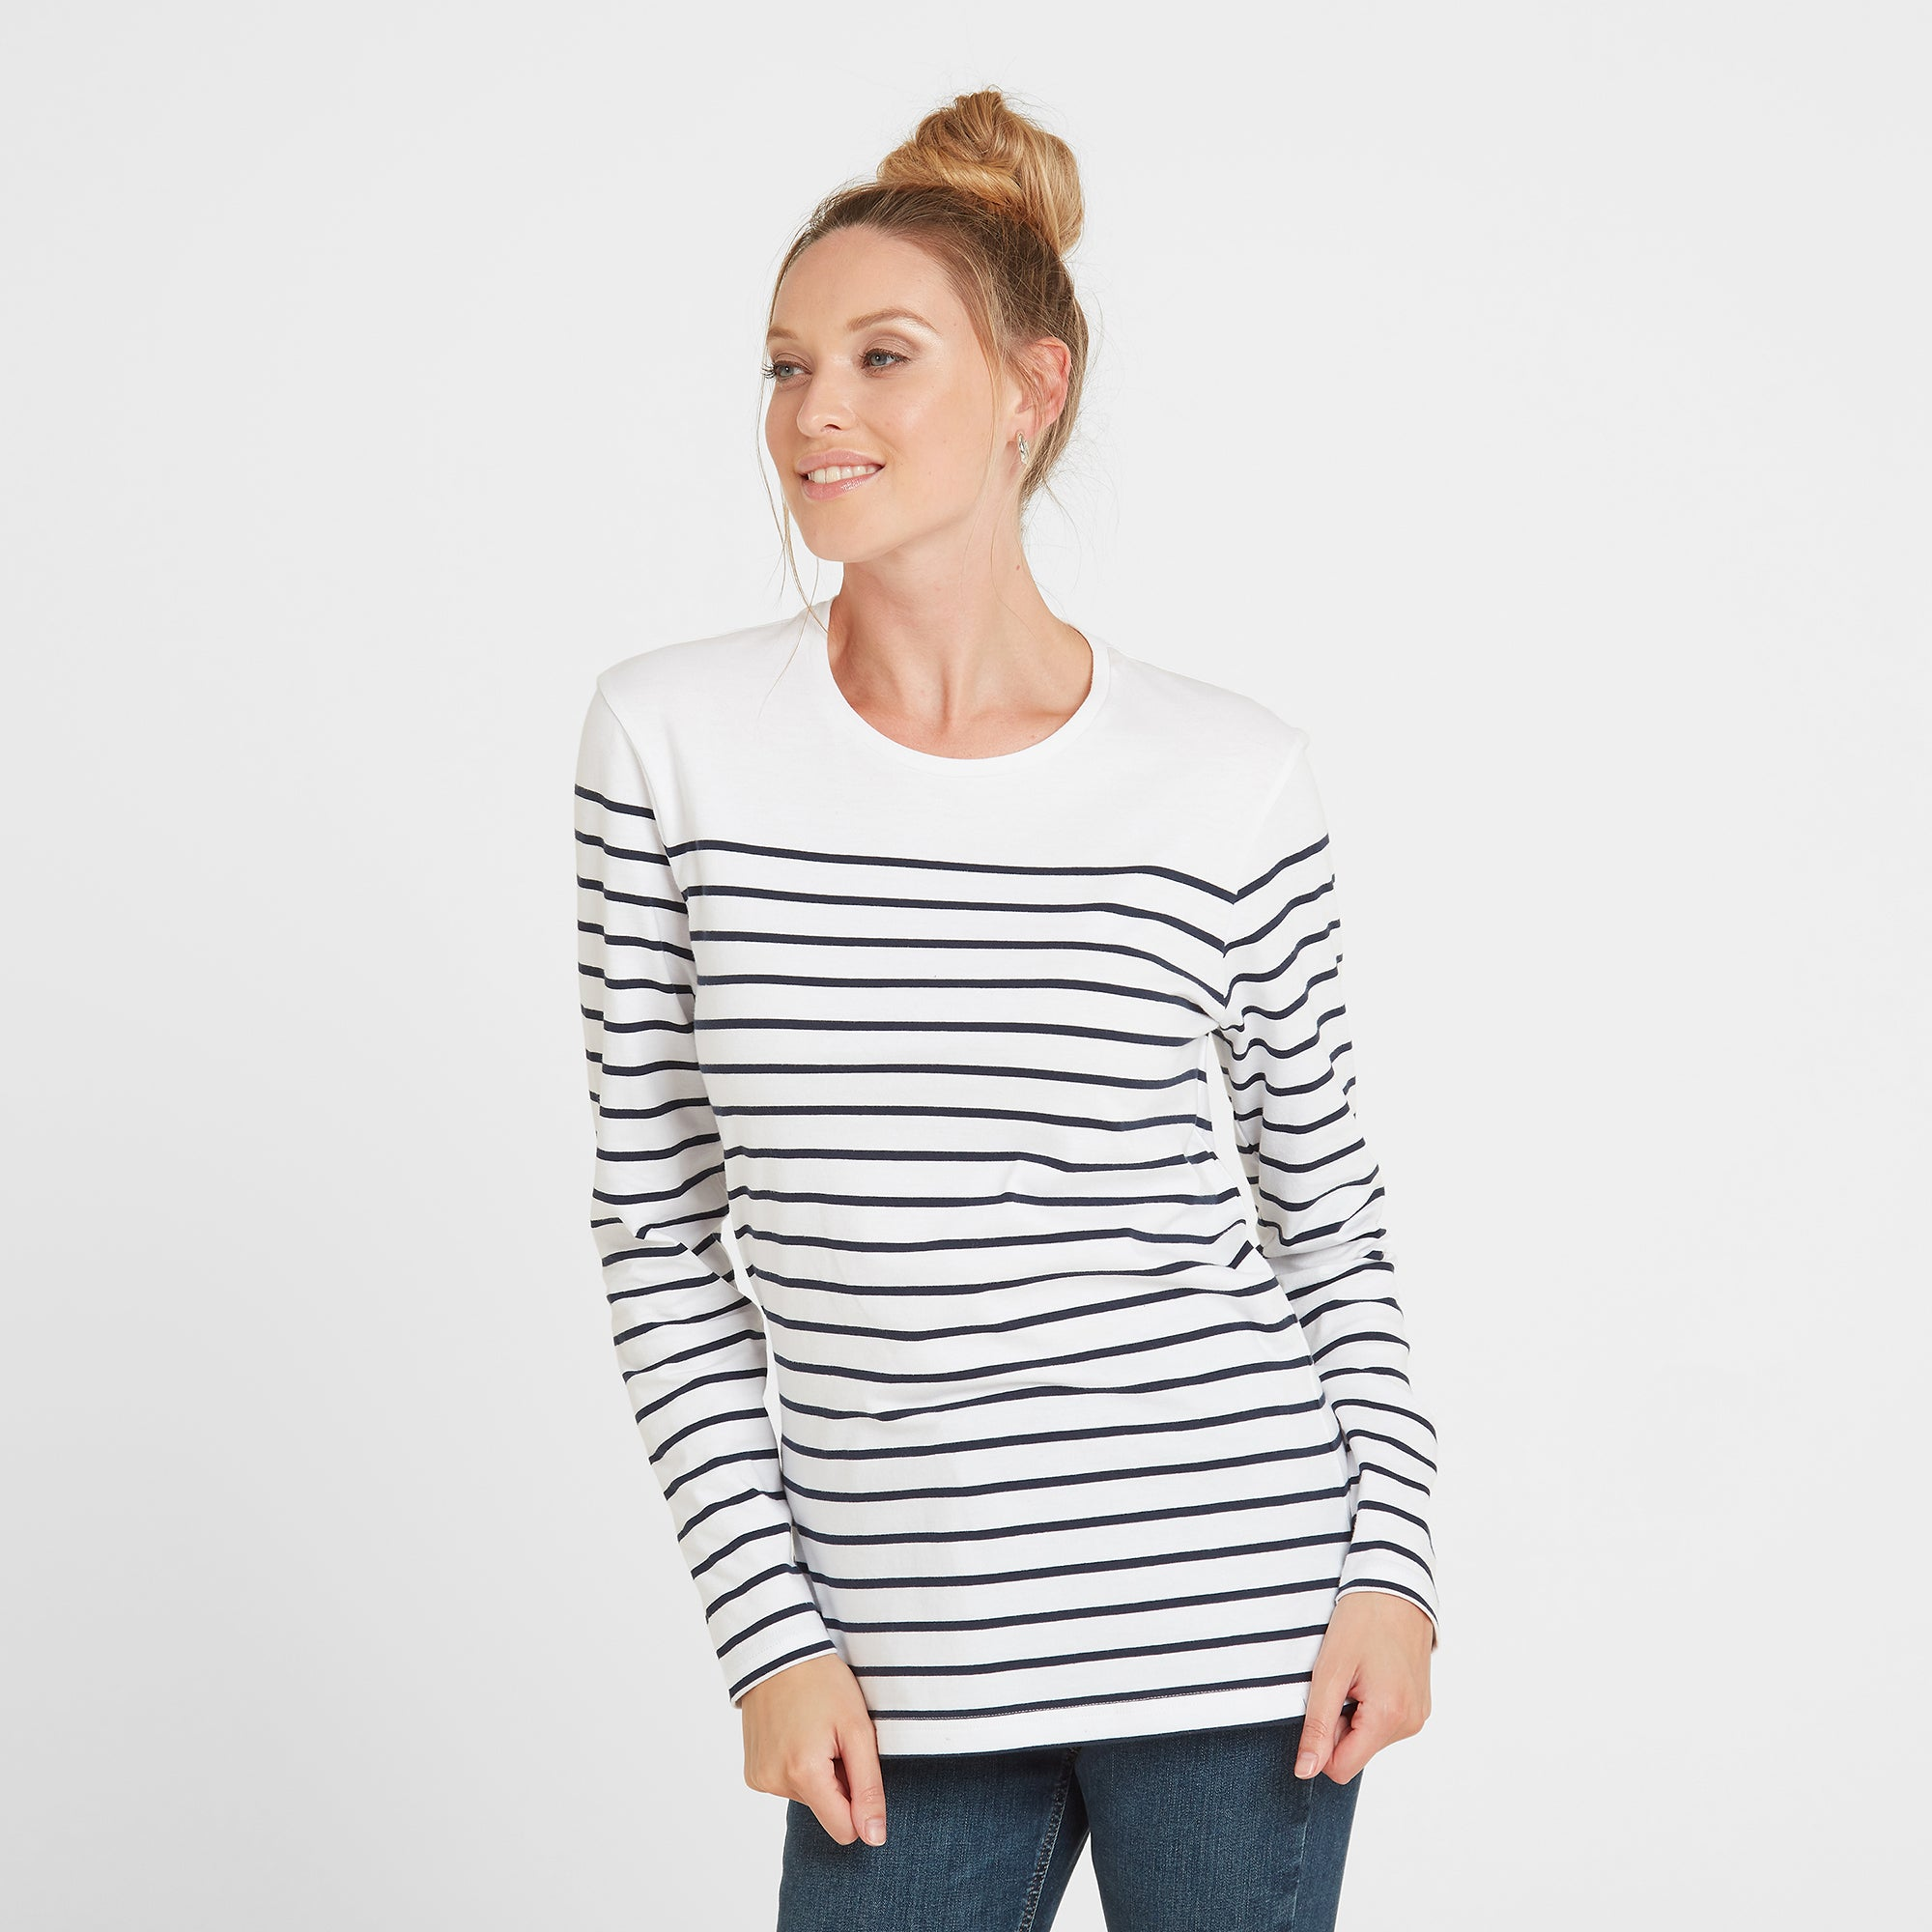 Betsy Womens Long Sleeve Stripe T-Shirt - White/Indigo